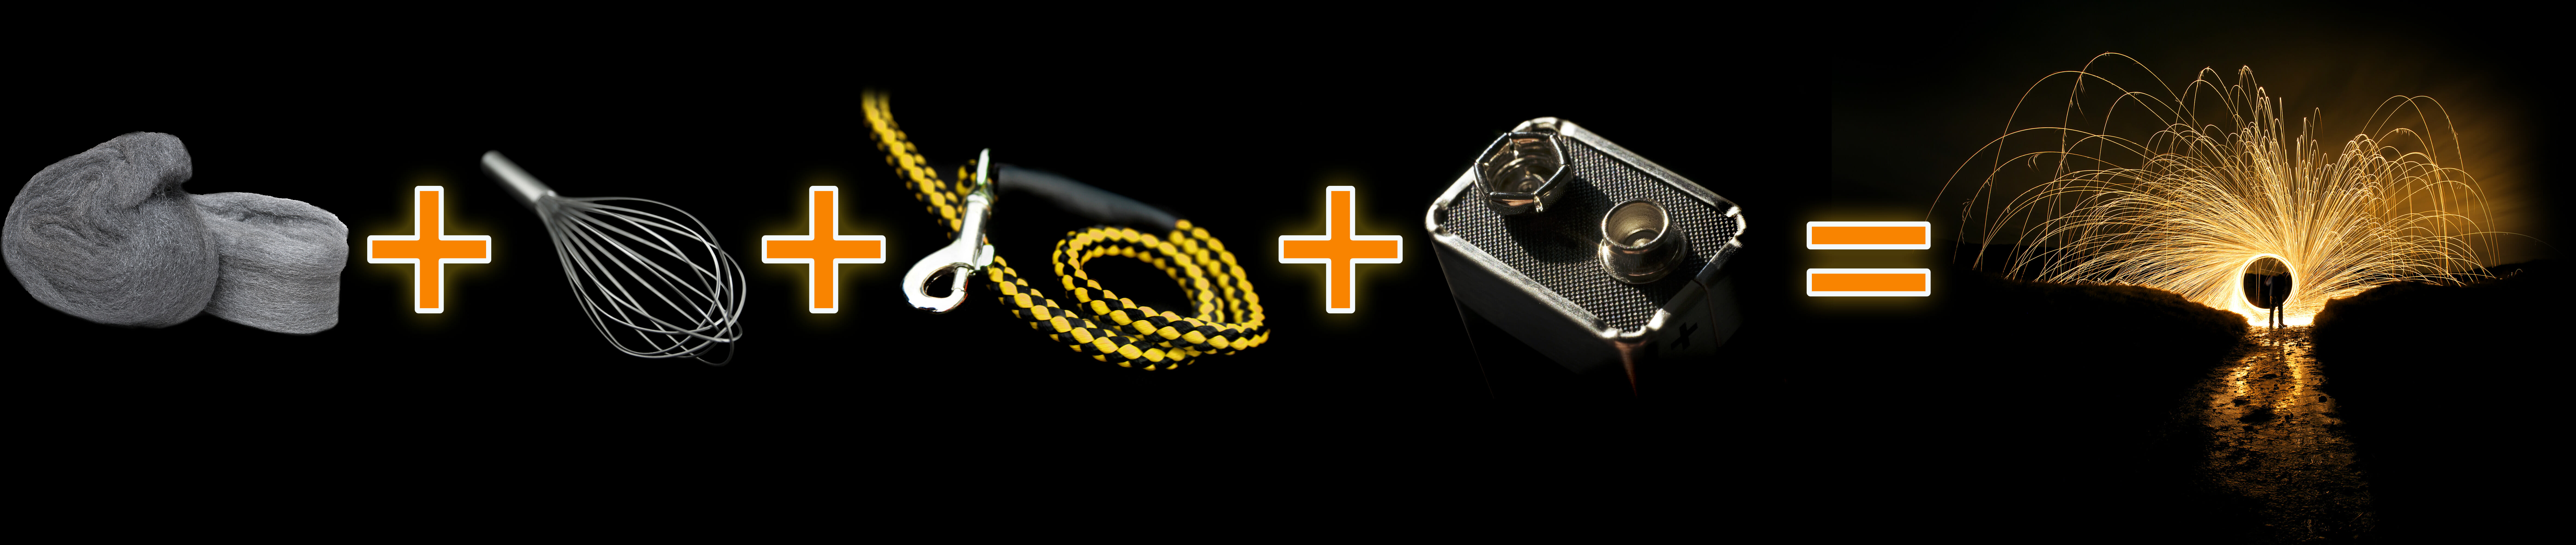 wire wool fire embers battery whisk dog lead 9v light tricks photography